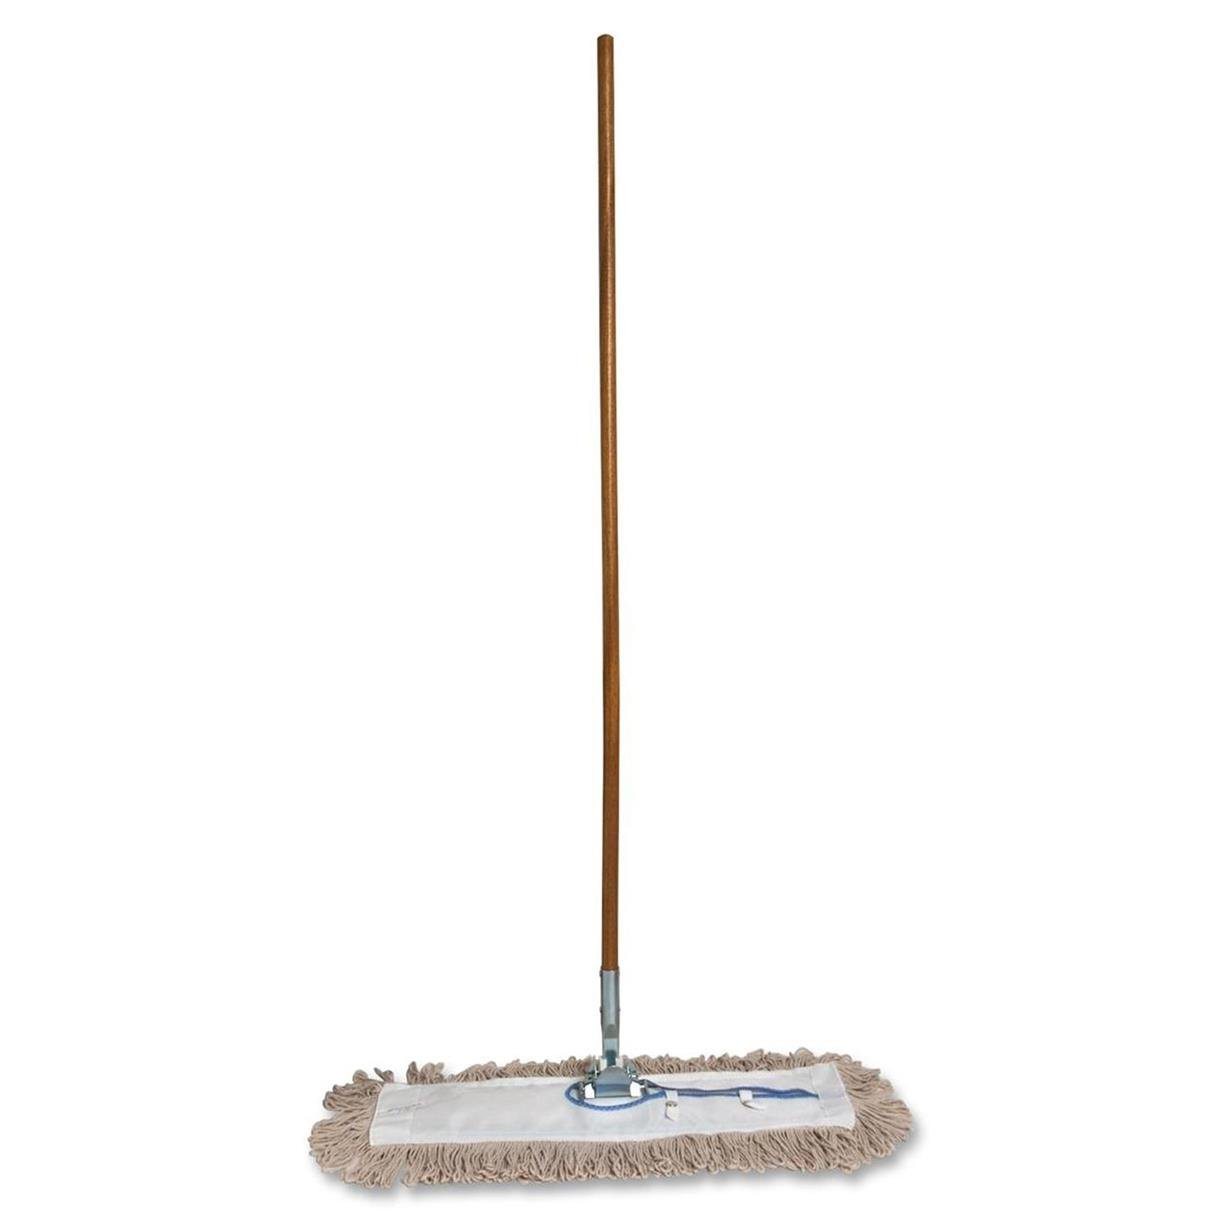 Genuine Joe GJO54101 Lightweight Dust Mop with Handle, 24